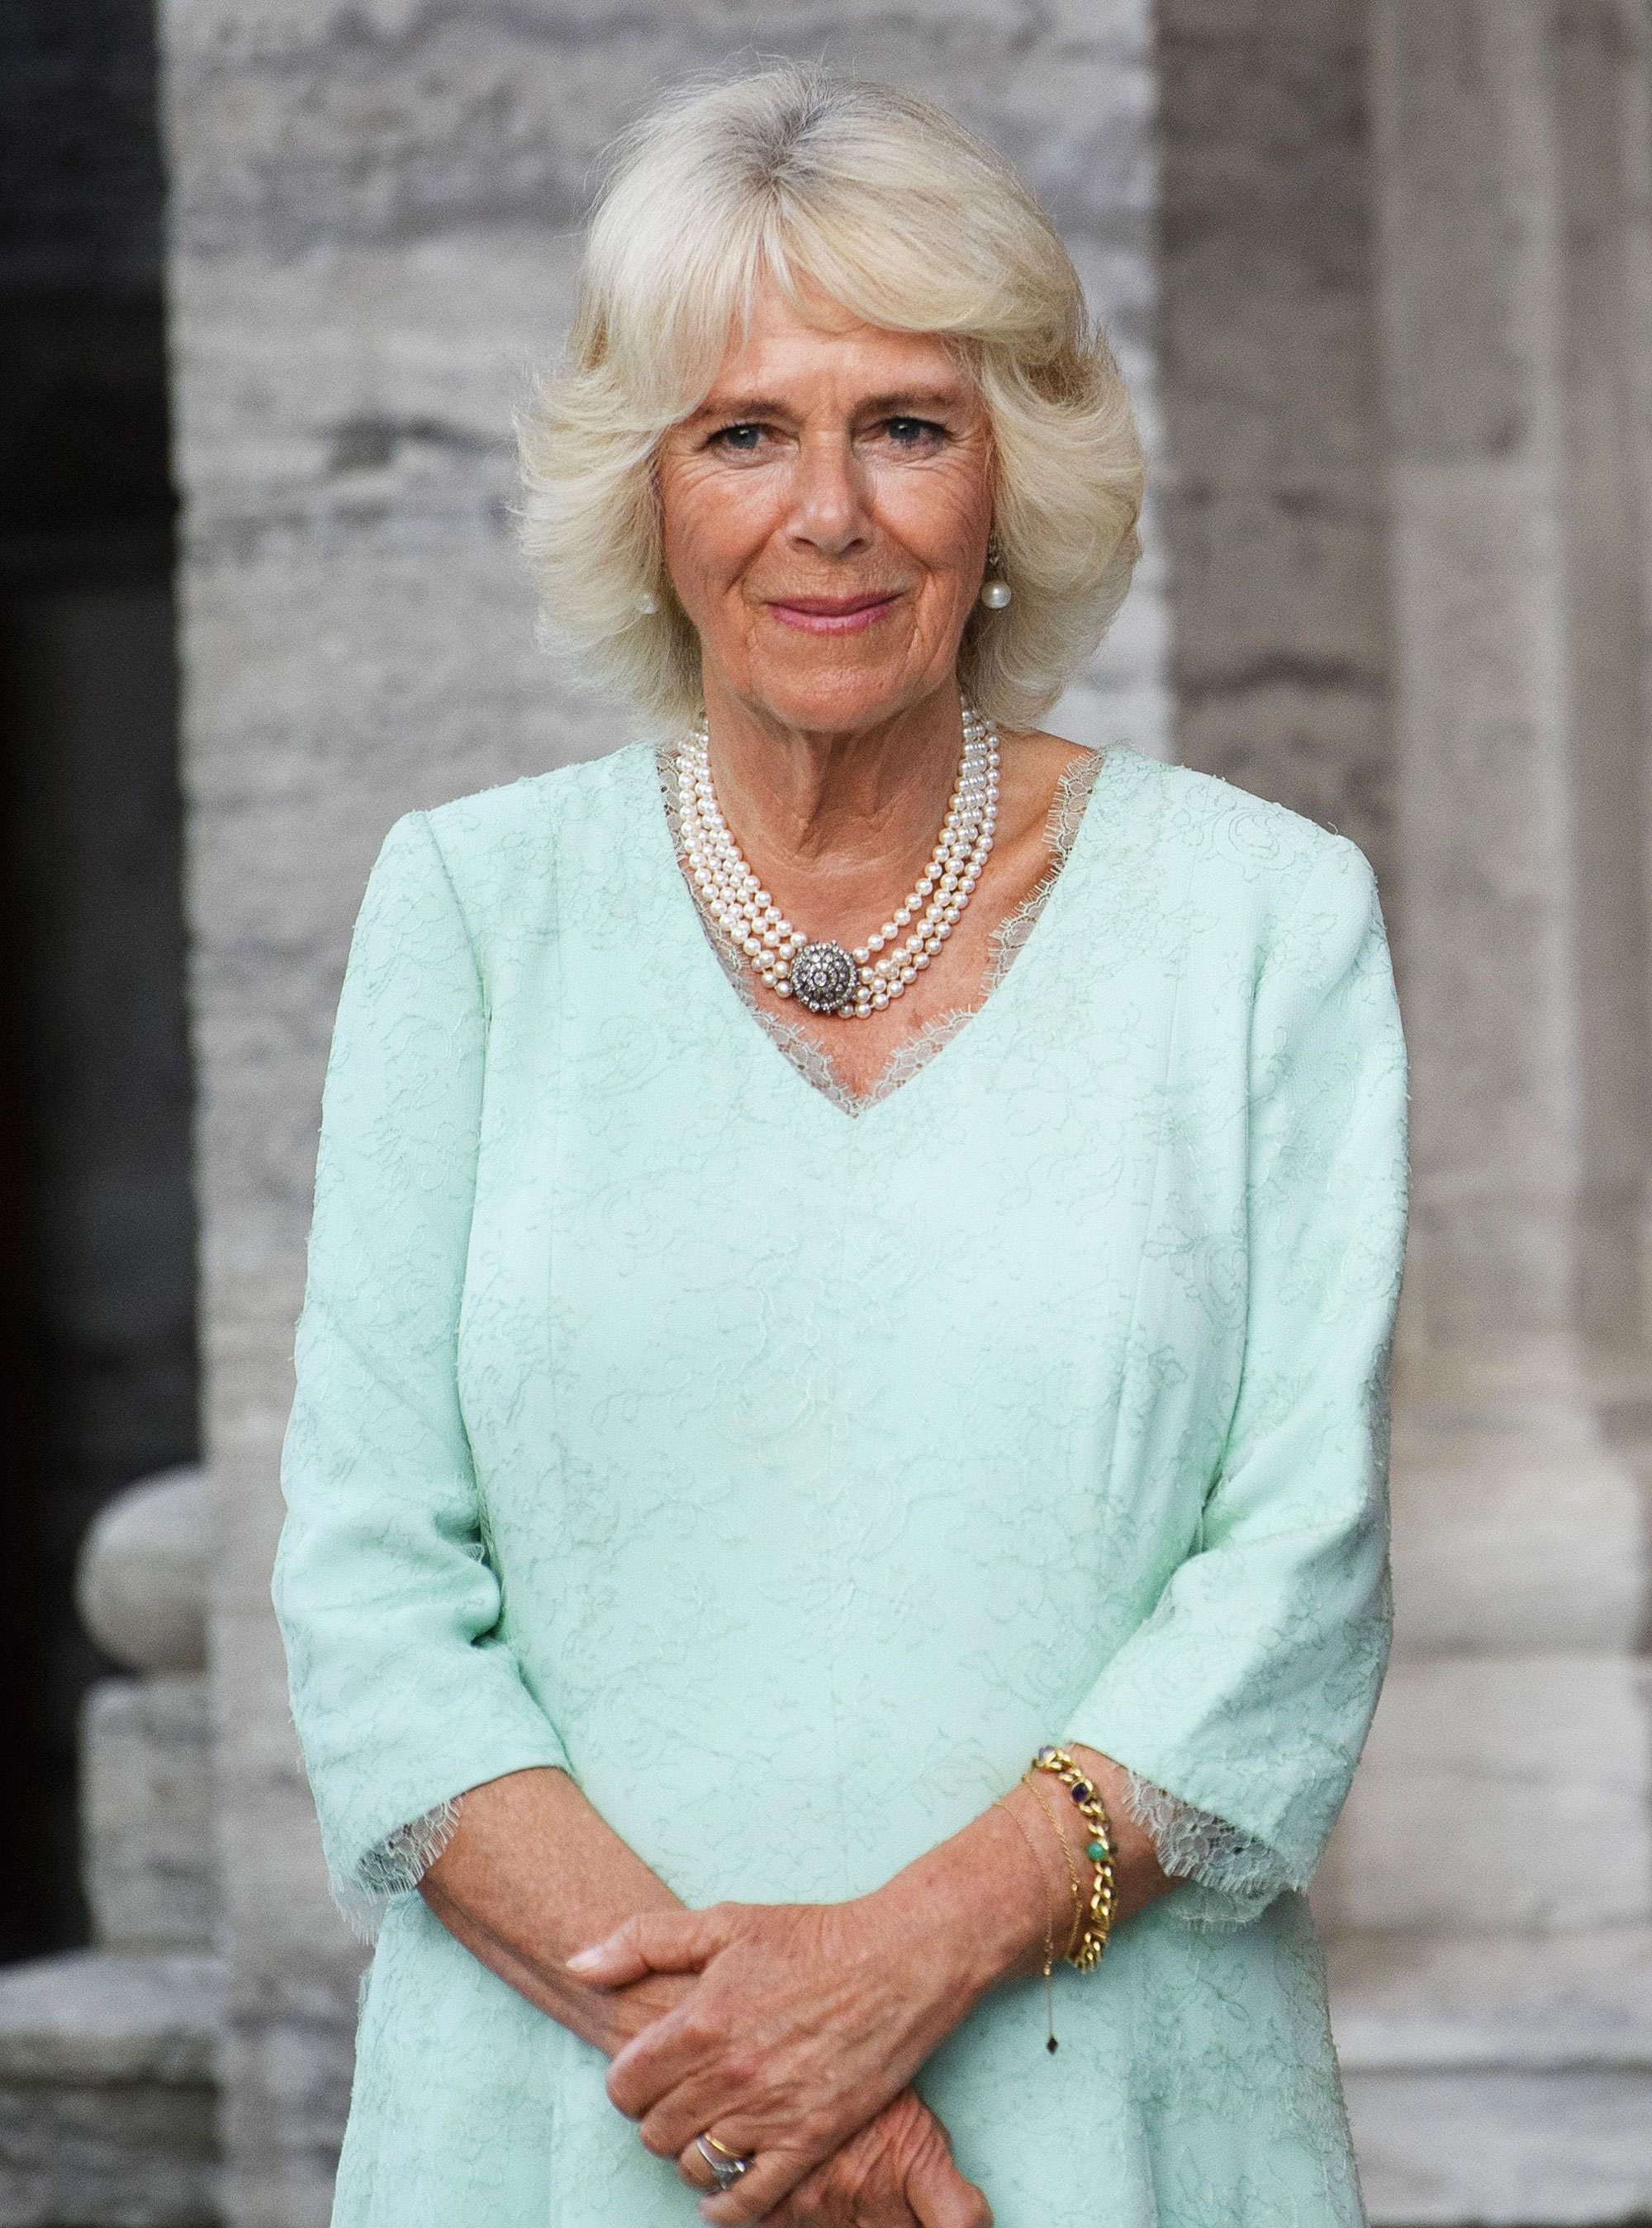 Duchess Of Cornwall Marks 70th Birthday With New Official